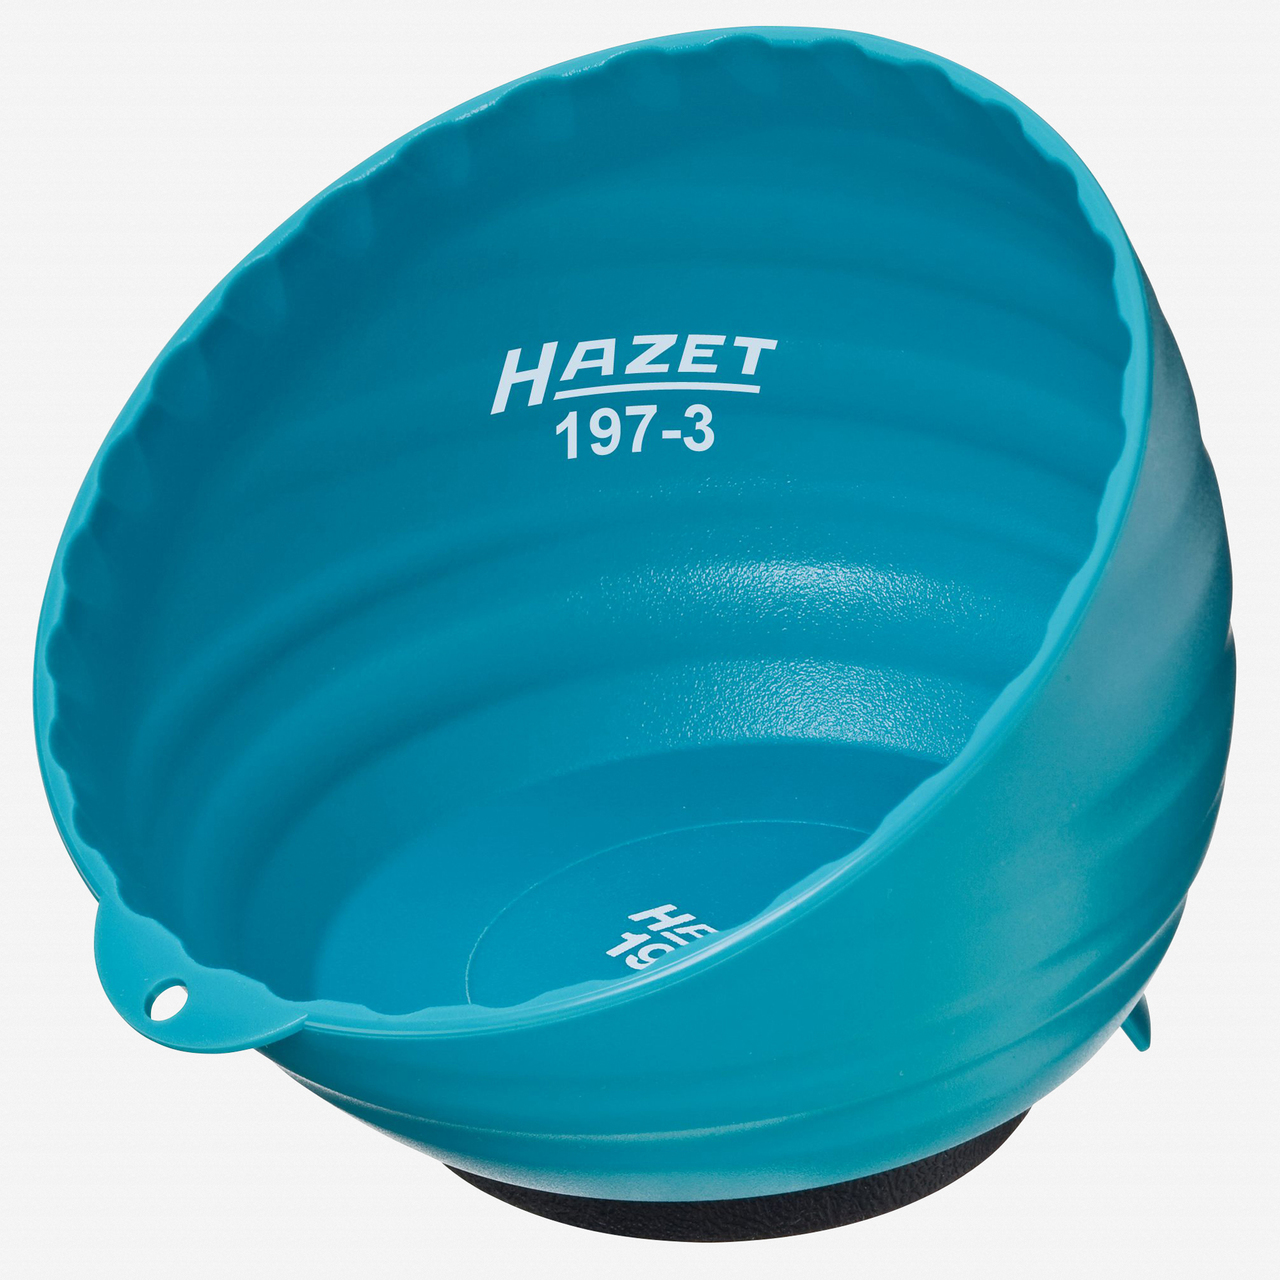 Hazet 197-3 Magnetic cup 150 mm diameter  - KC Tool